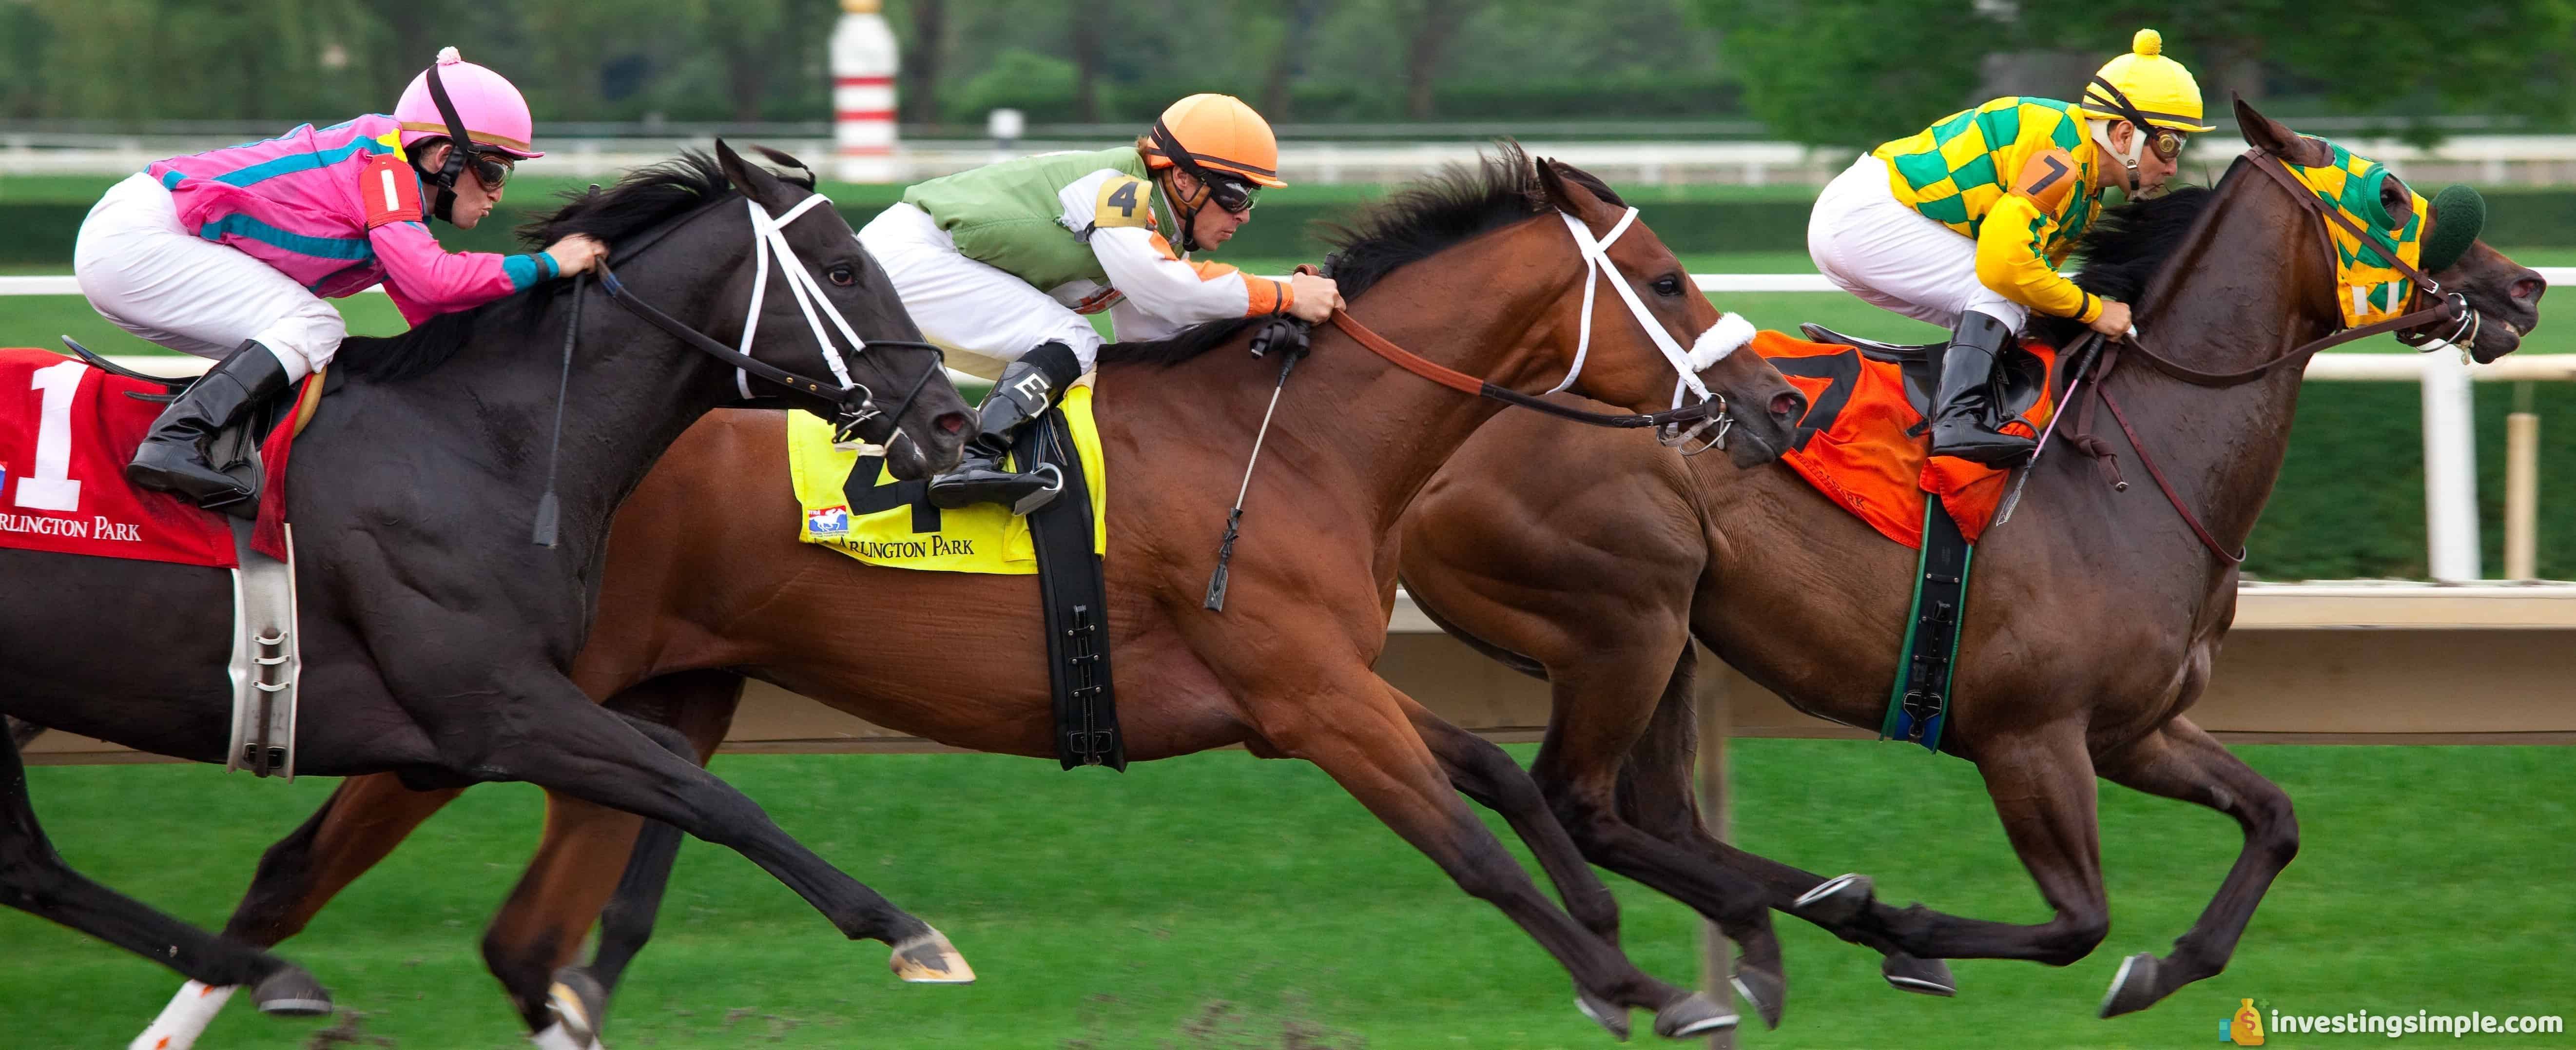 Investing in index funds that track the overall stock market is similar to betting on the outcome of an entire horse race instead of picking one winning horse.